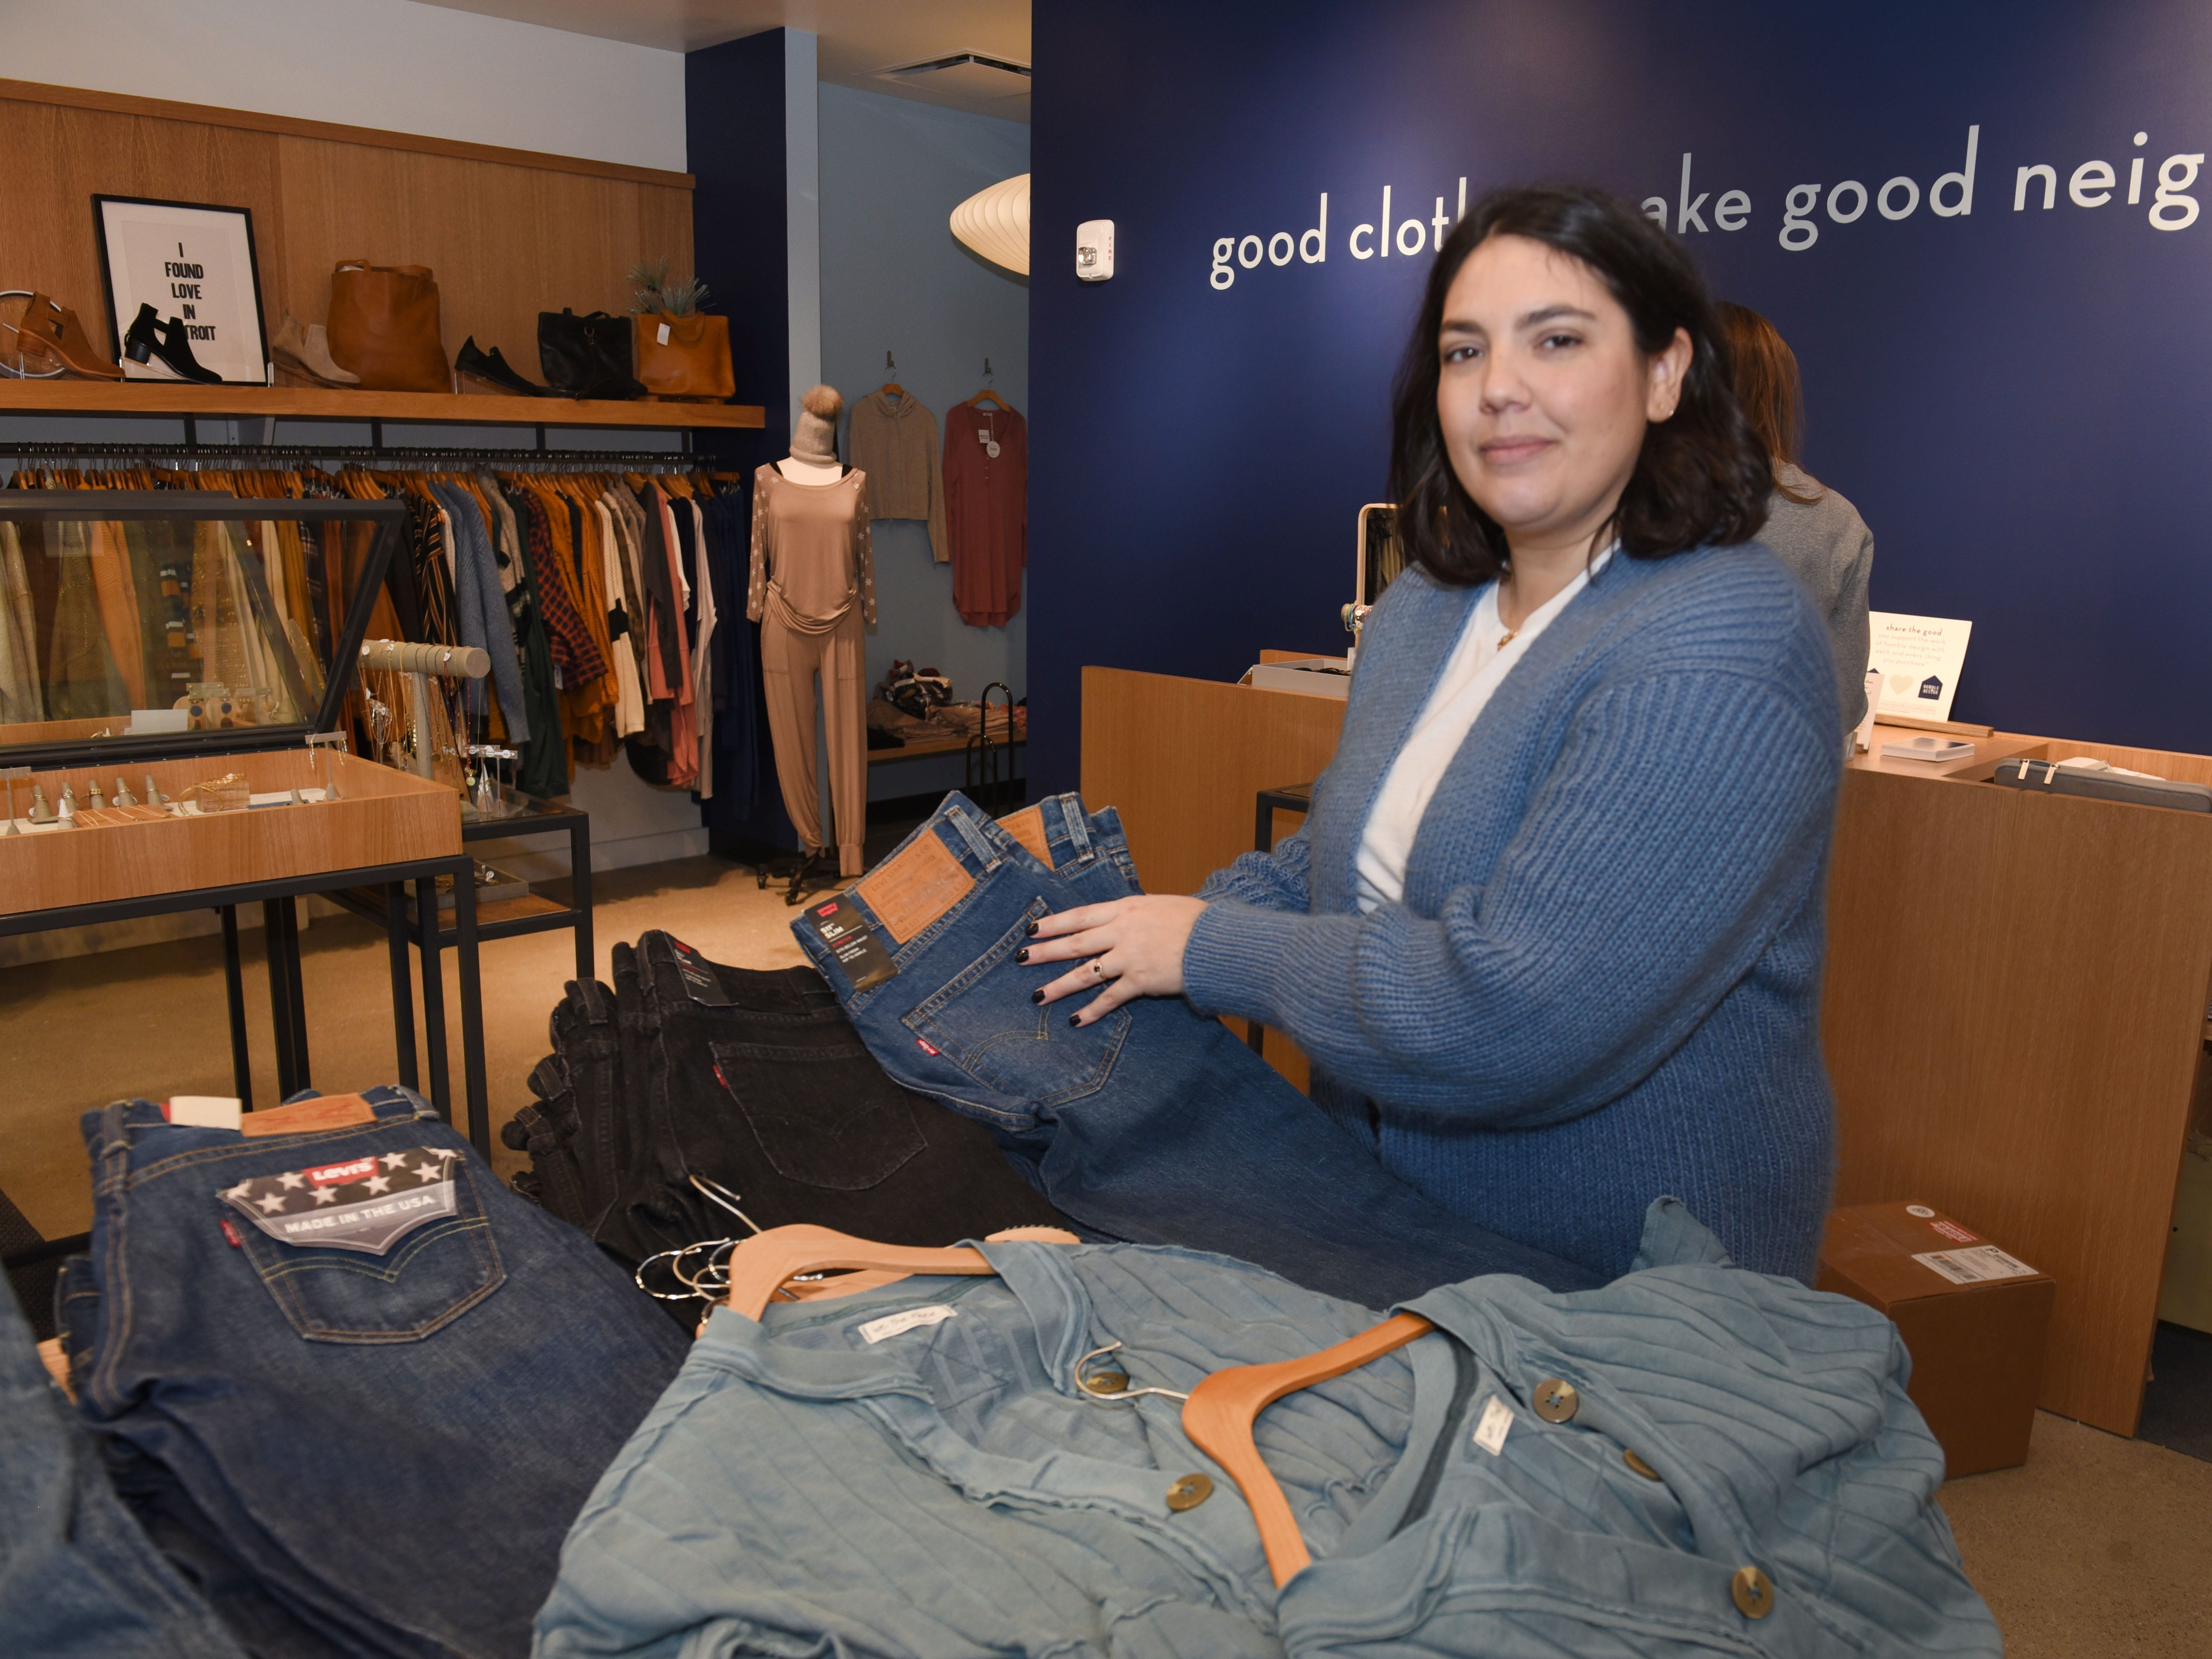 Carli Goltowski, owner of Good Neighbor, works at the newly opened store on  December 7, 2018.